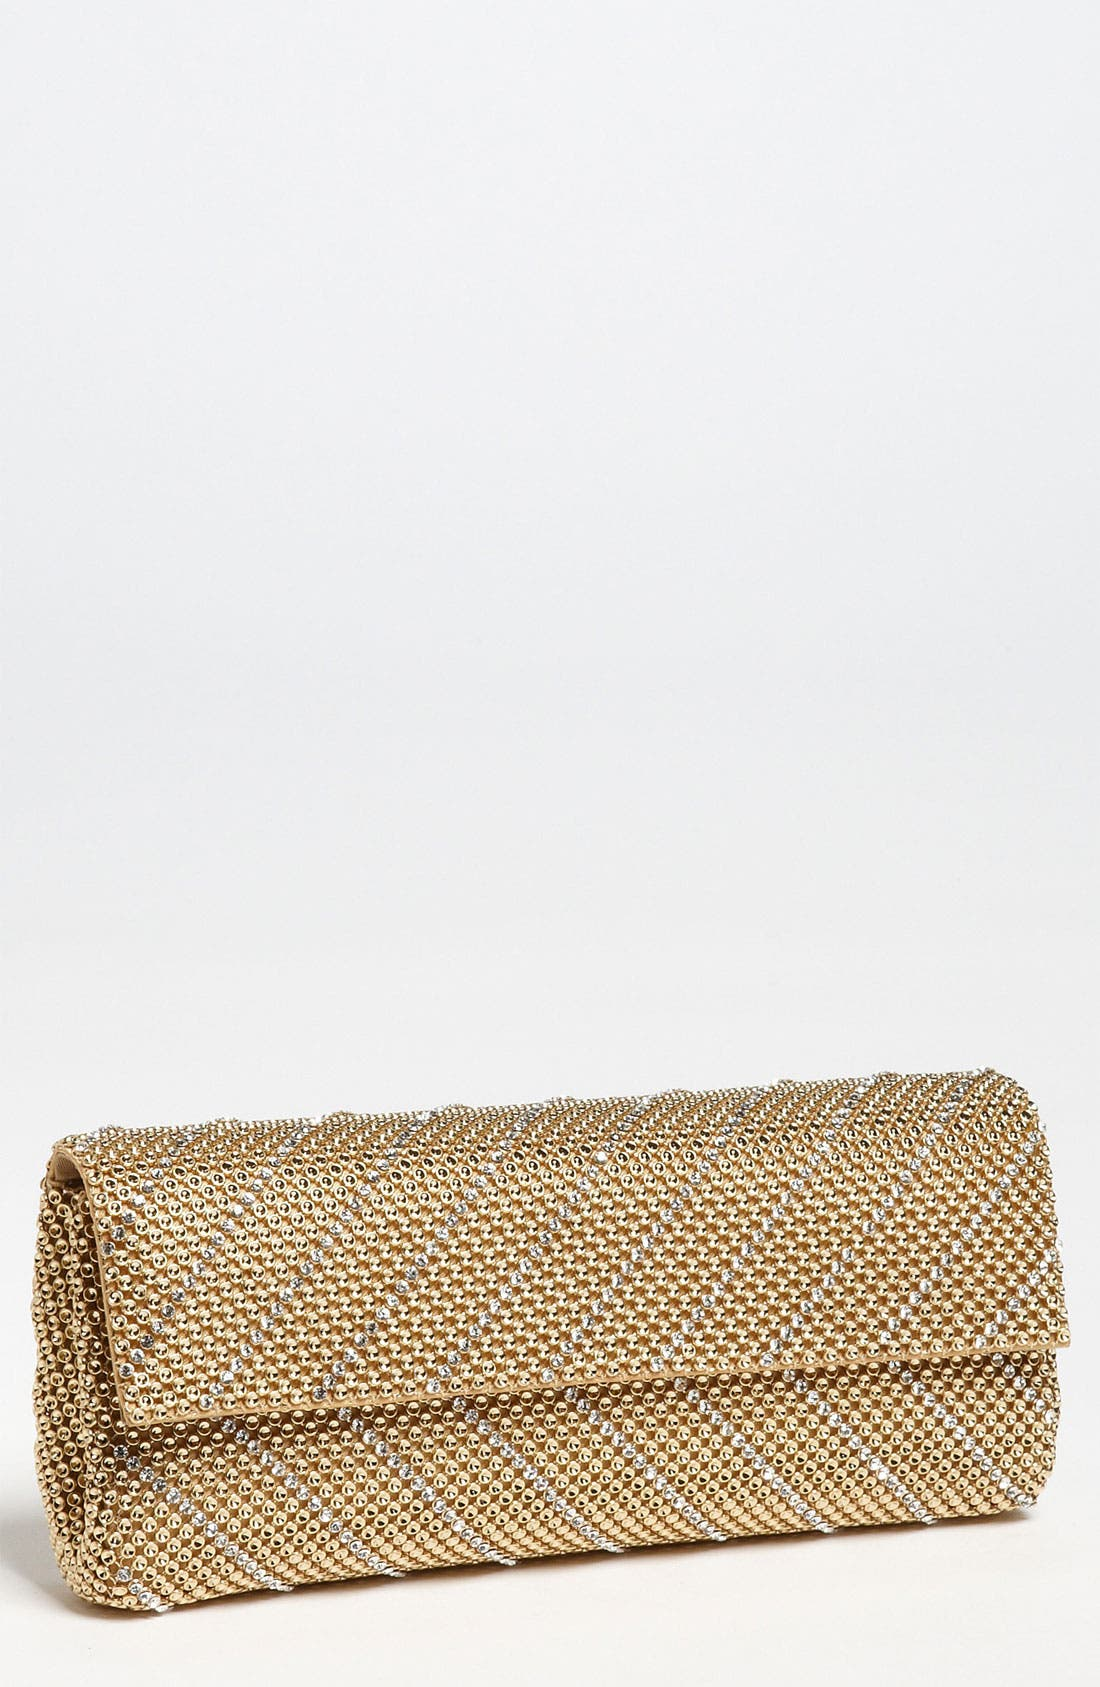 Main Image - Whiting & Davis 'Crystal Chevron' Flap Clutch